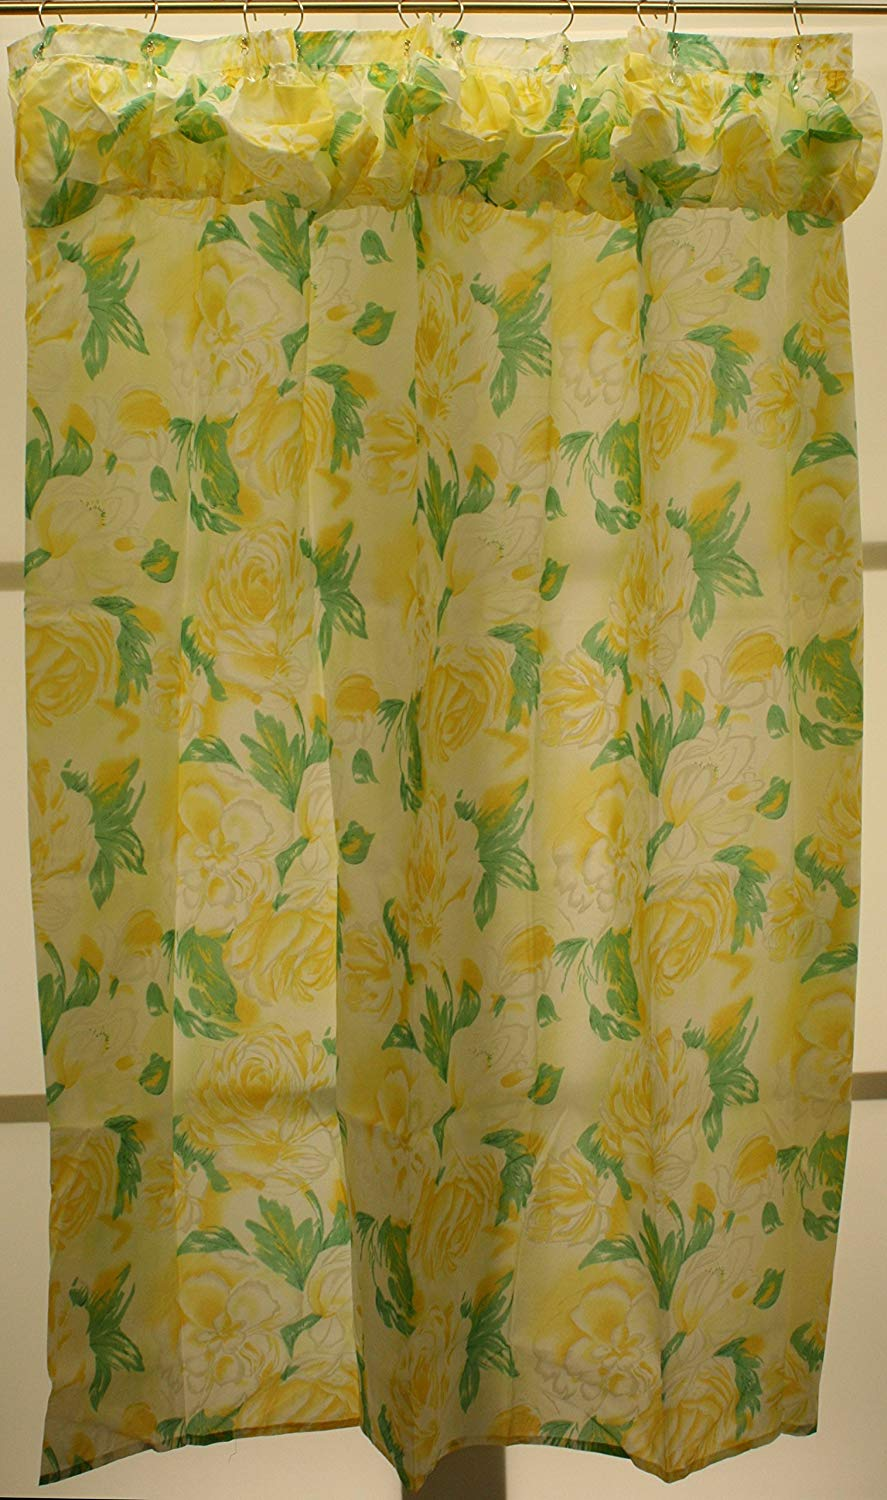 Cheap Curtain Attached Valance Find Curtain Attached Valance Deals